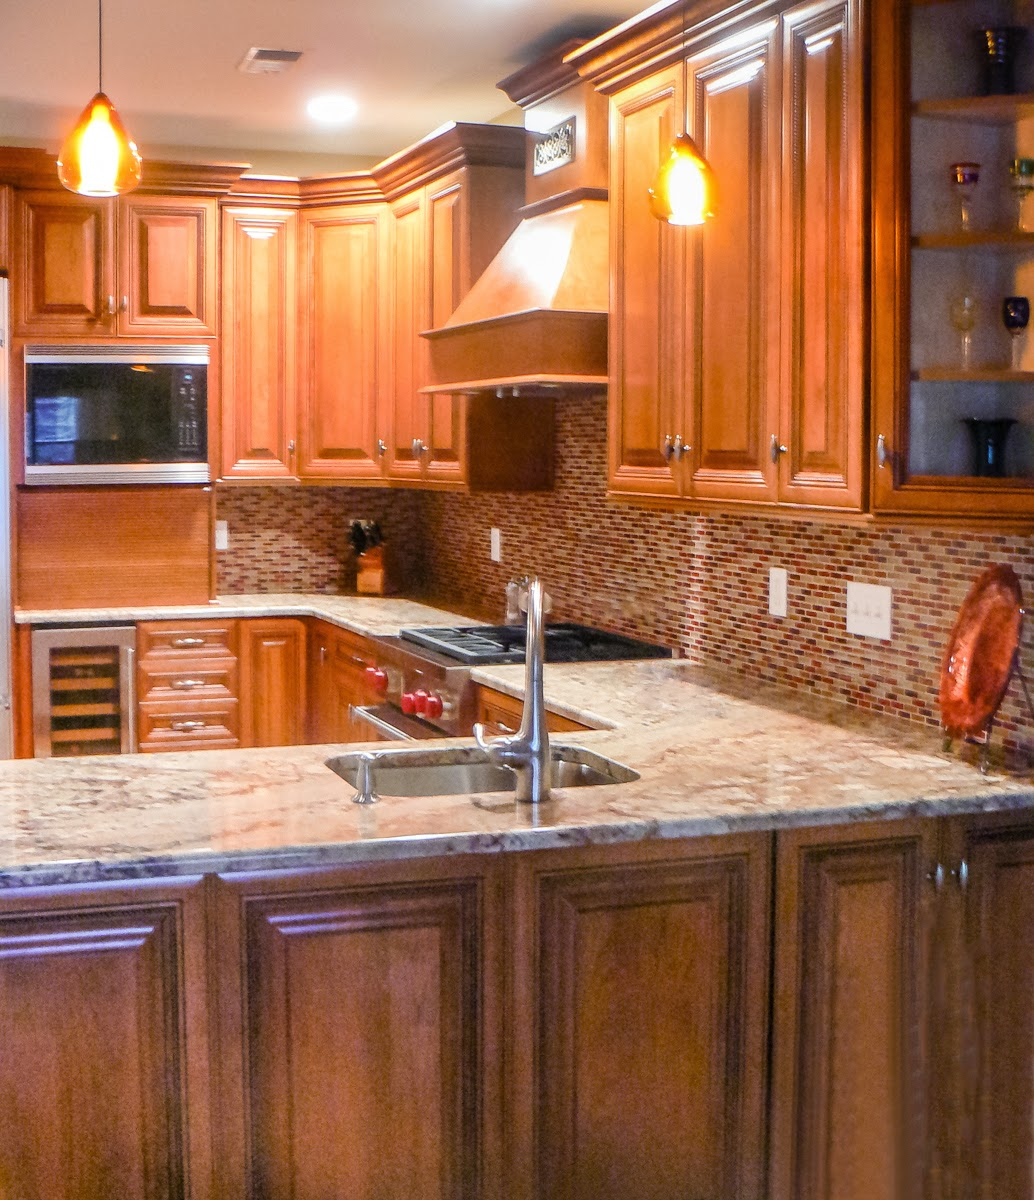 Donate Used Kitchen Cabinets: Robin's Nest: Does Your Kitchen Or Bathroom Need A Botox